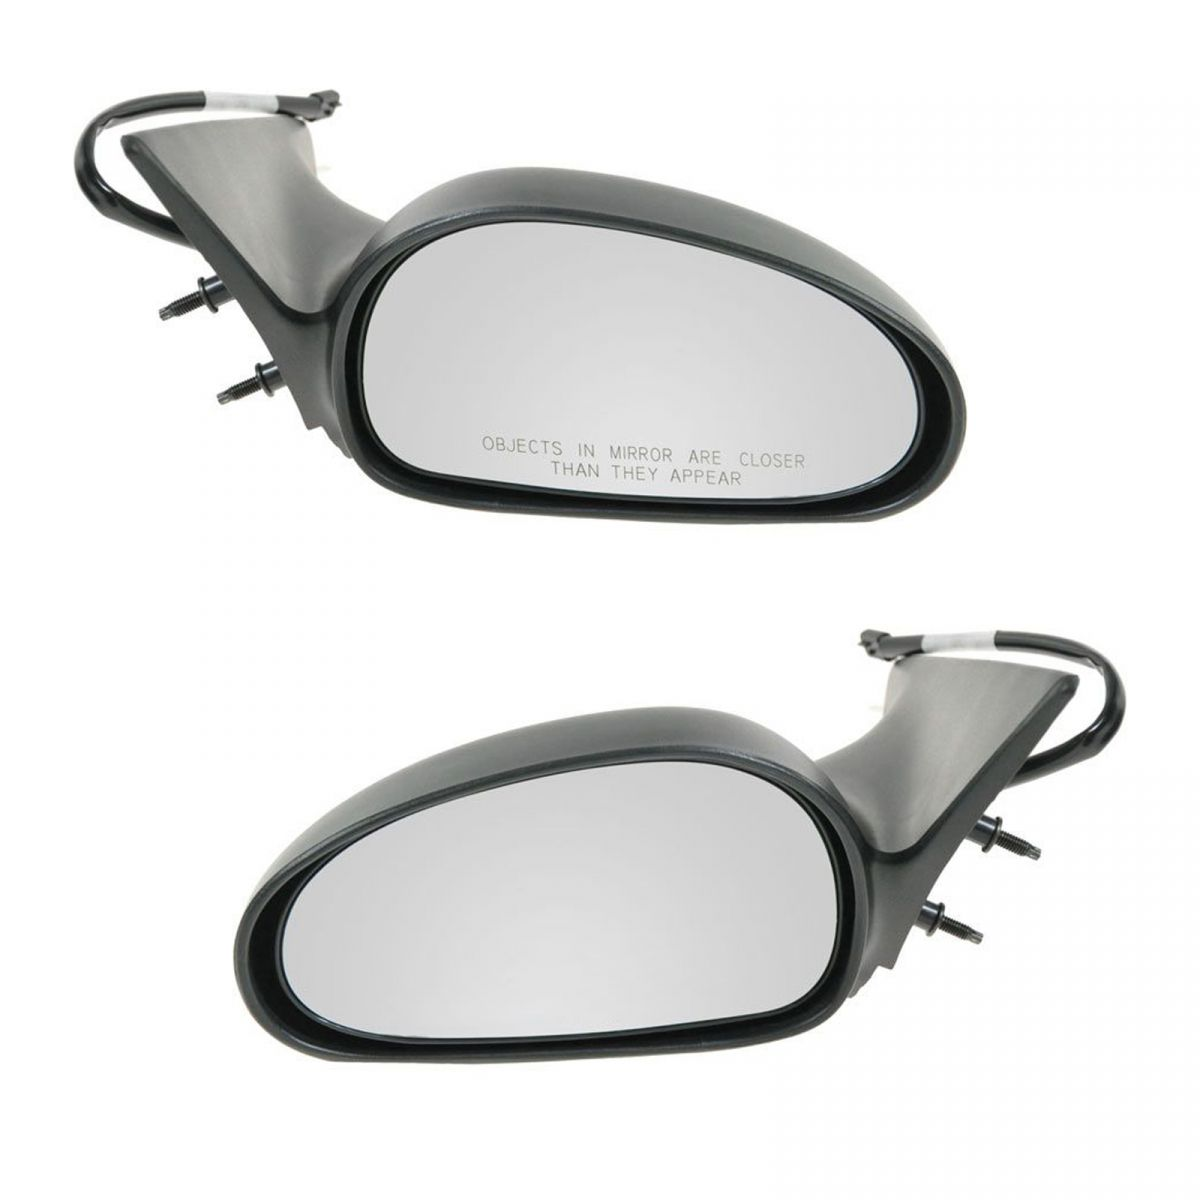 96-98 Ford Mustang Passenger Side Mirror Replacement